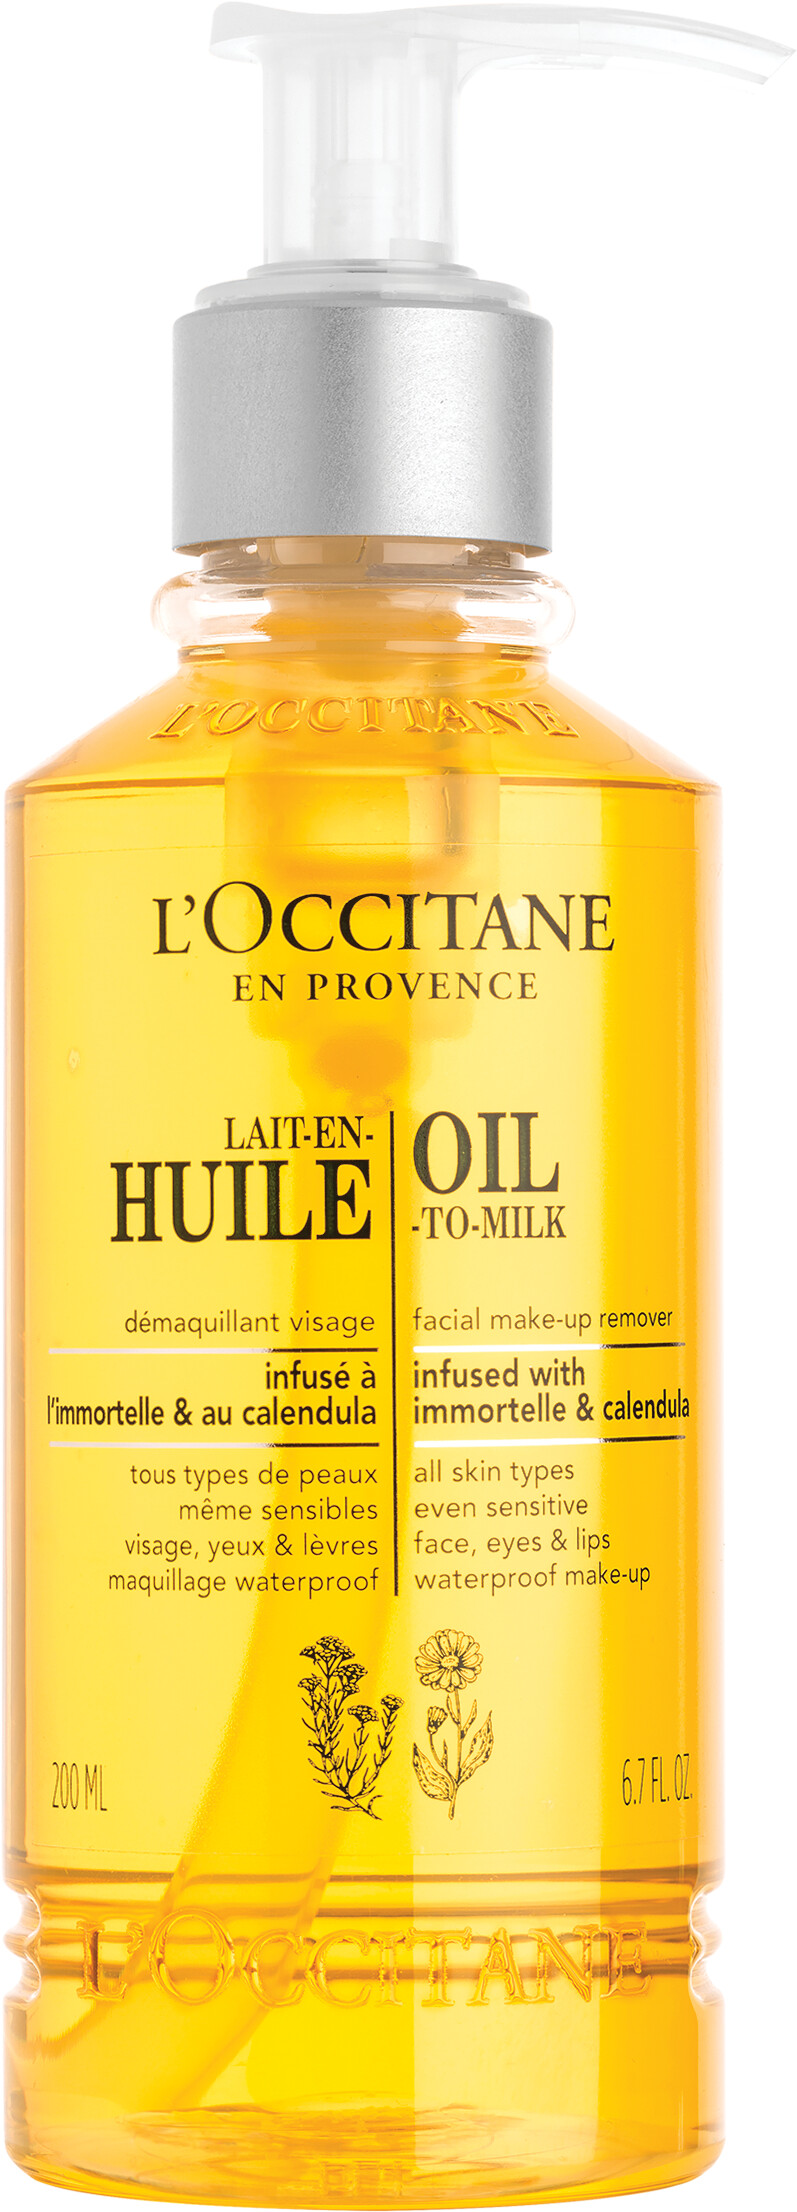 L Occitane Cleansing Infusion Oil To